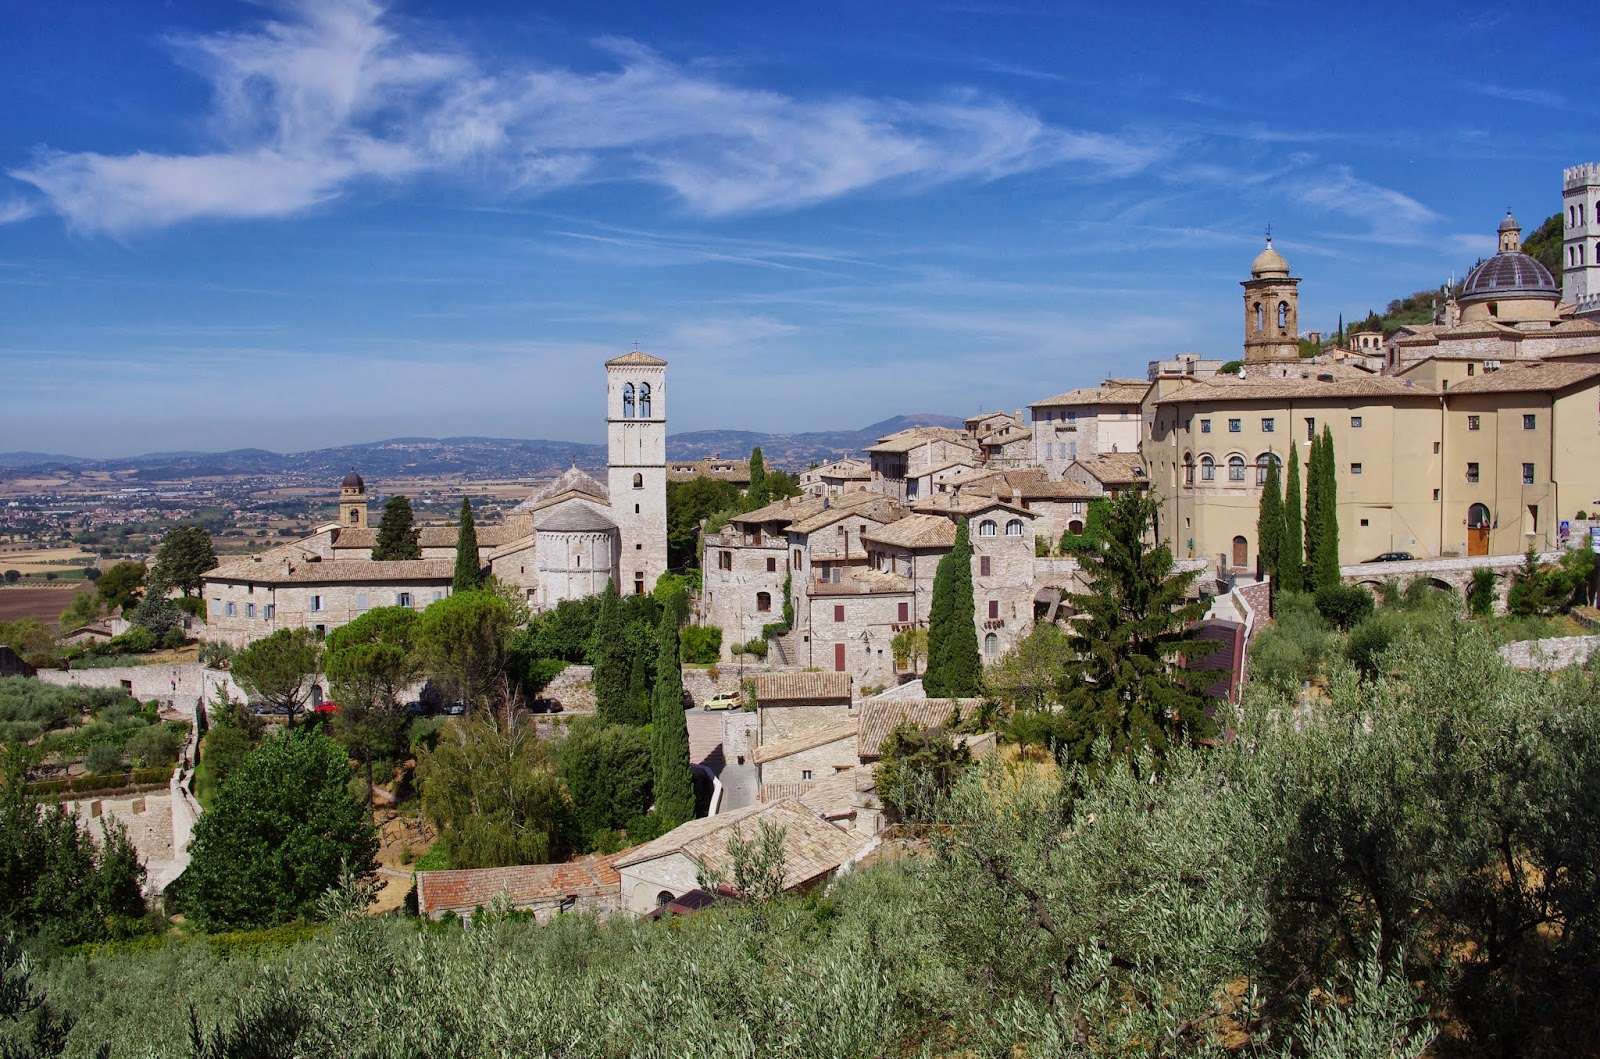 saint francis assisi essay View saint francis of assisi research papers on academiaedu for free.